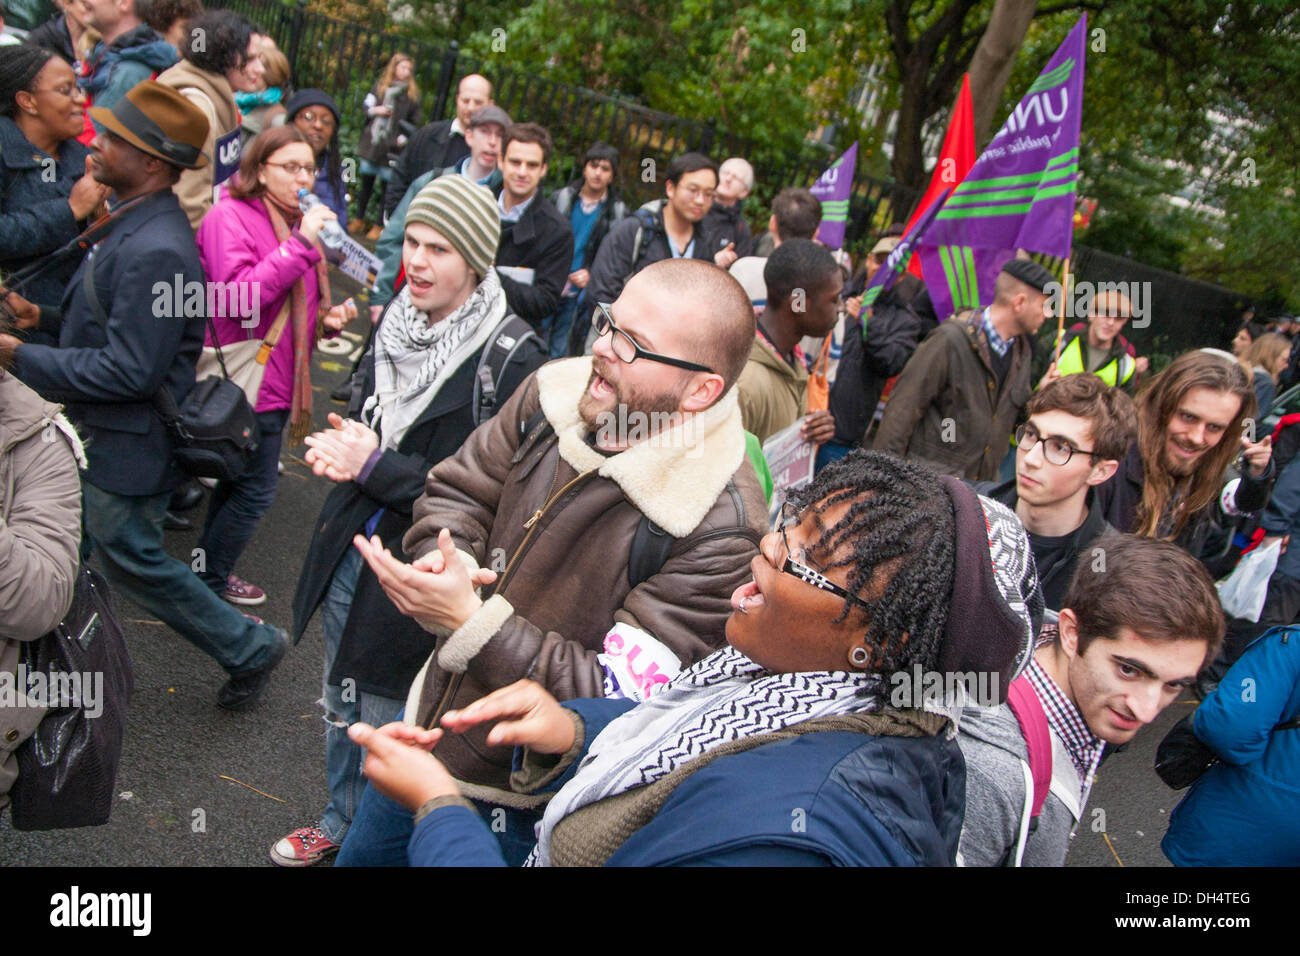 London, UK. 31st October 2013. Protesters sing at Red Lion Square as university staff and students, Unison, Unite and UCU  picketed and marched demanding fairer wage increases and a living wage for low-paid university support staff. Credit:  Paul Davey/Alamy Live News - Stock Image